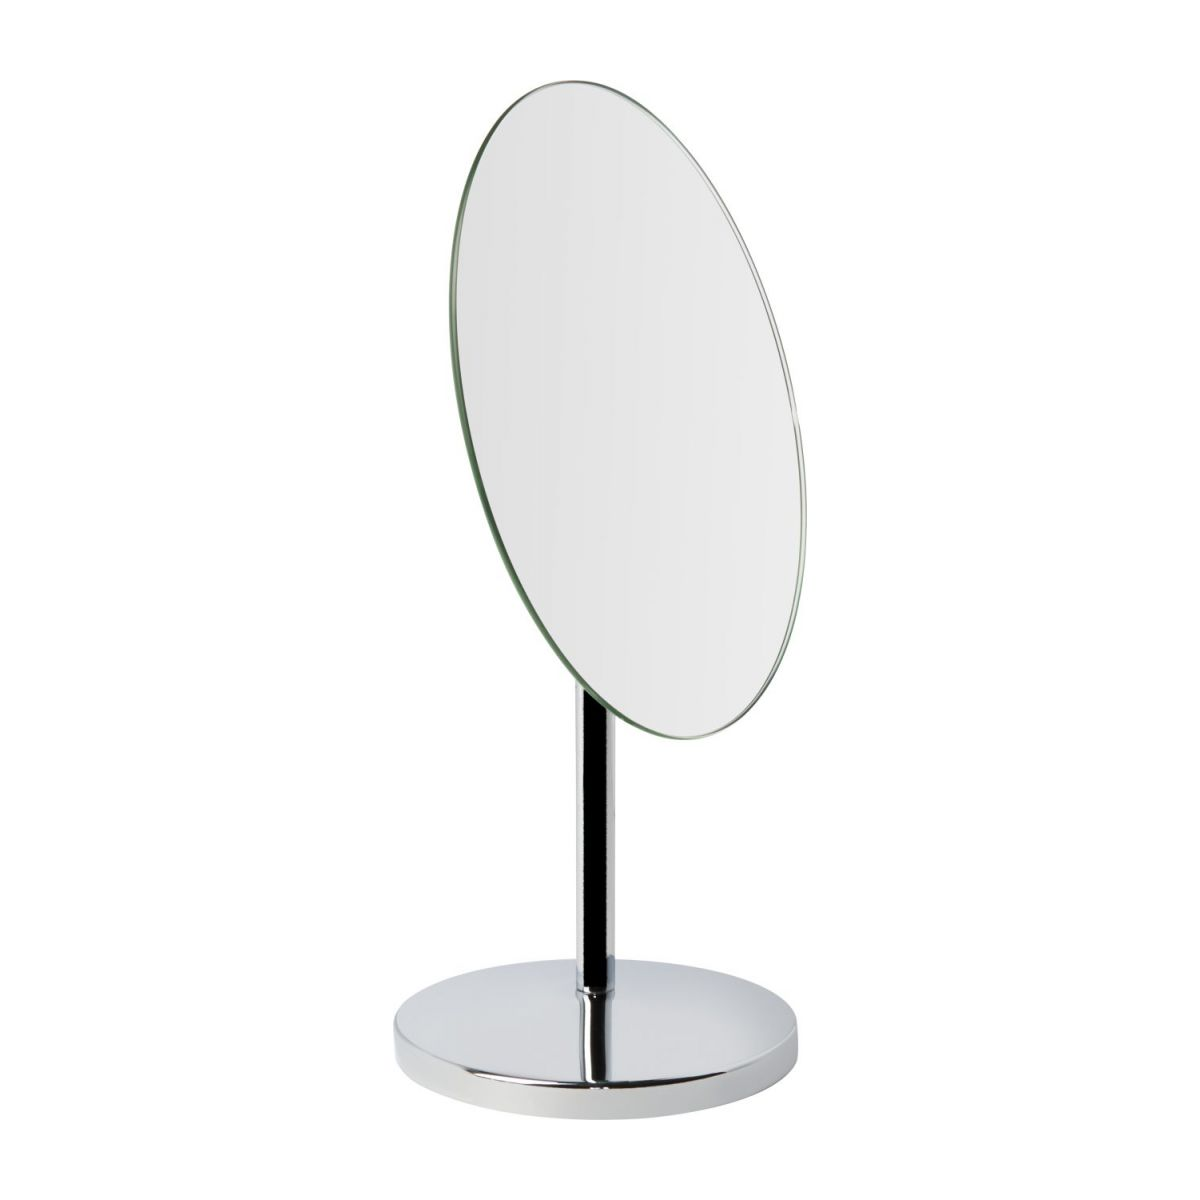 Magnifying mirror n°1